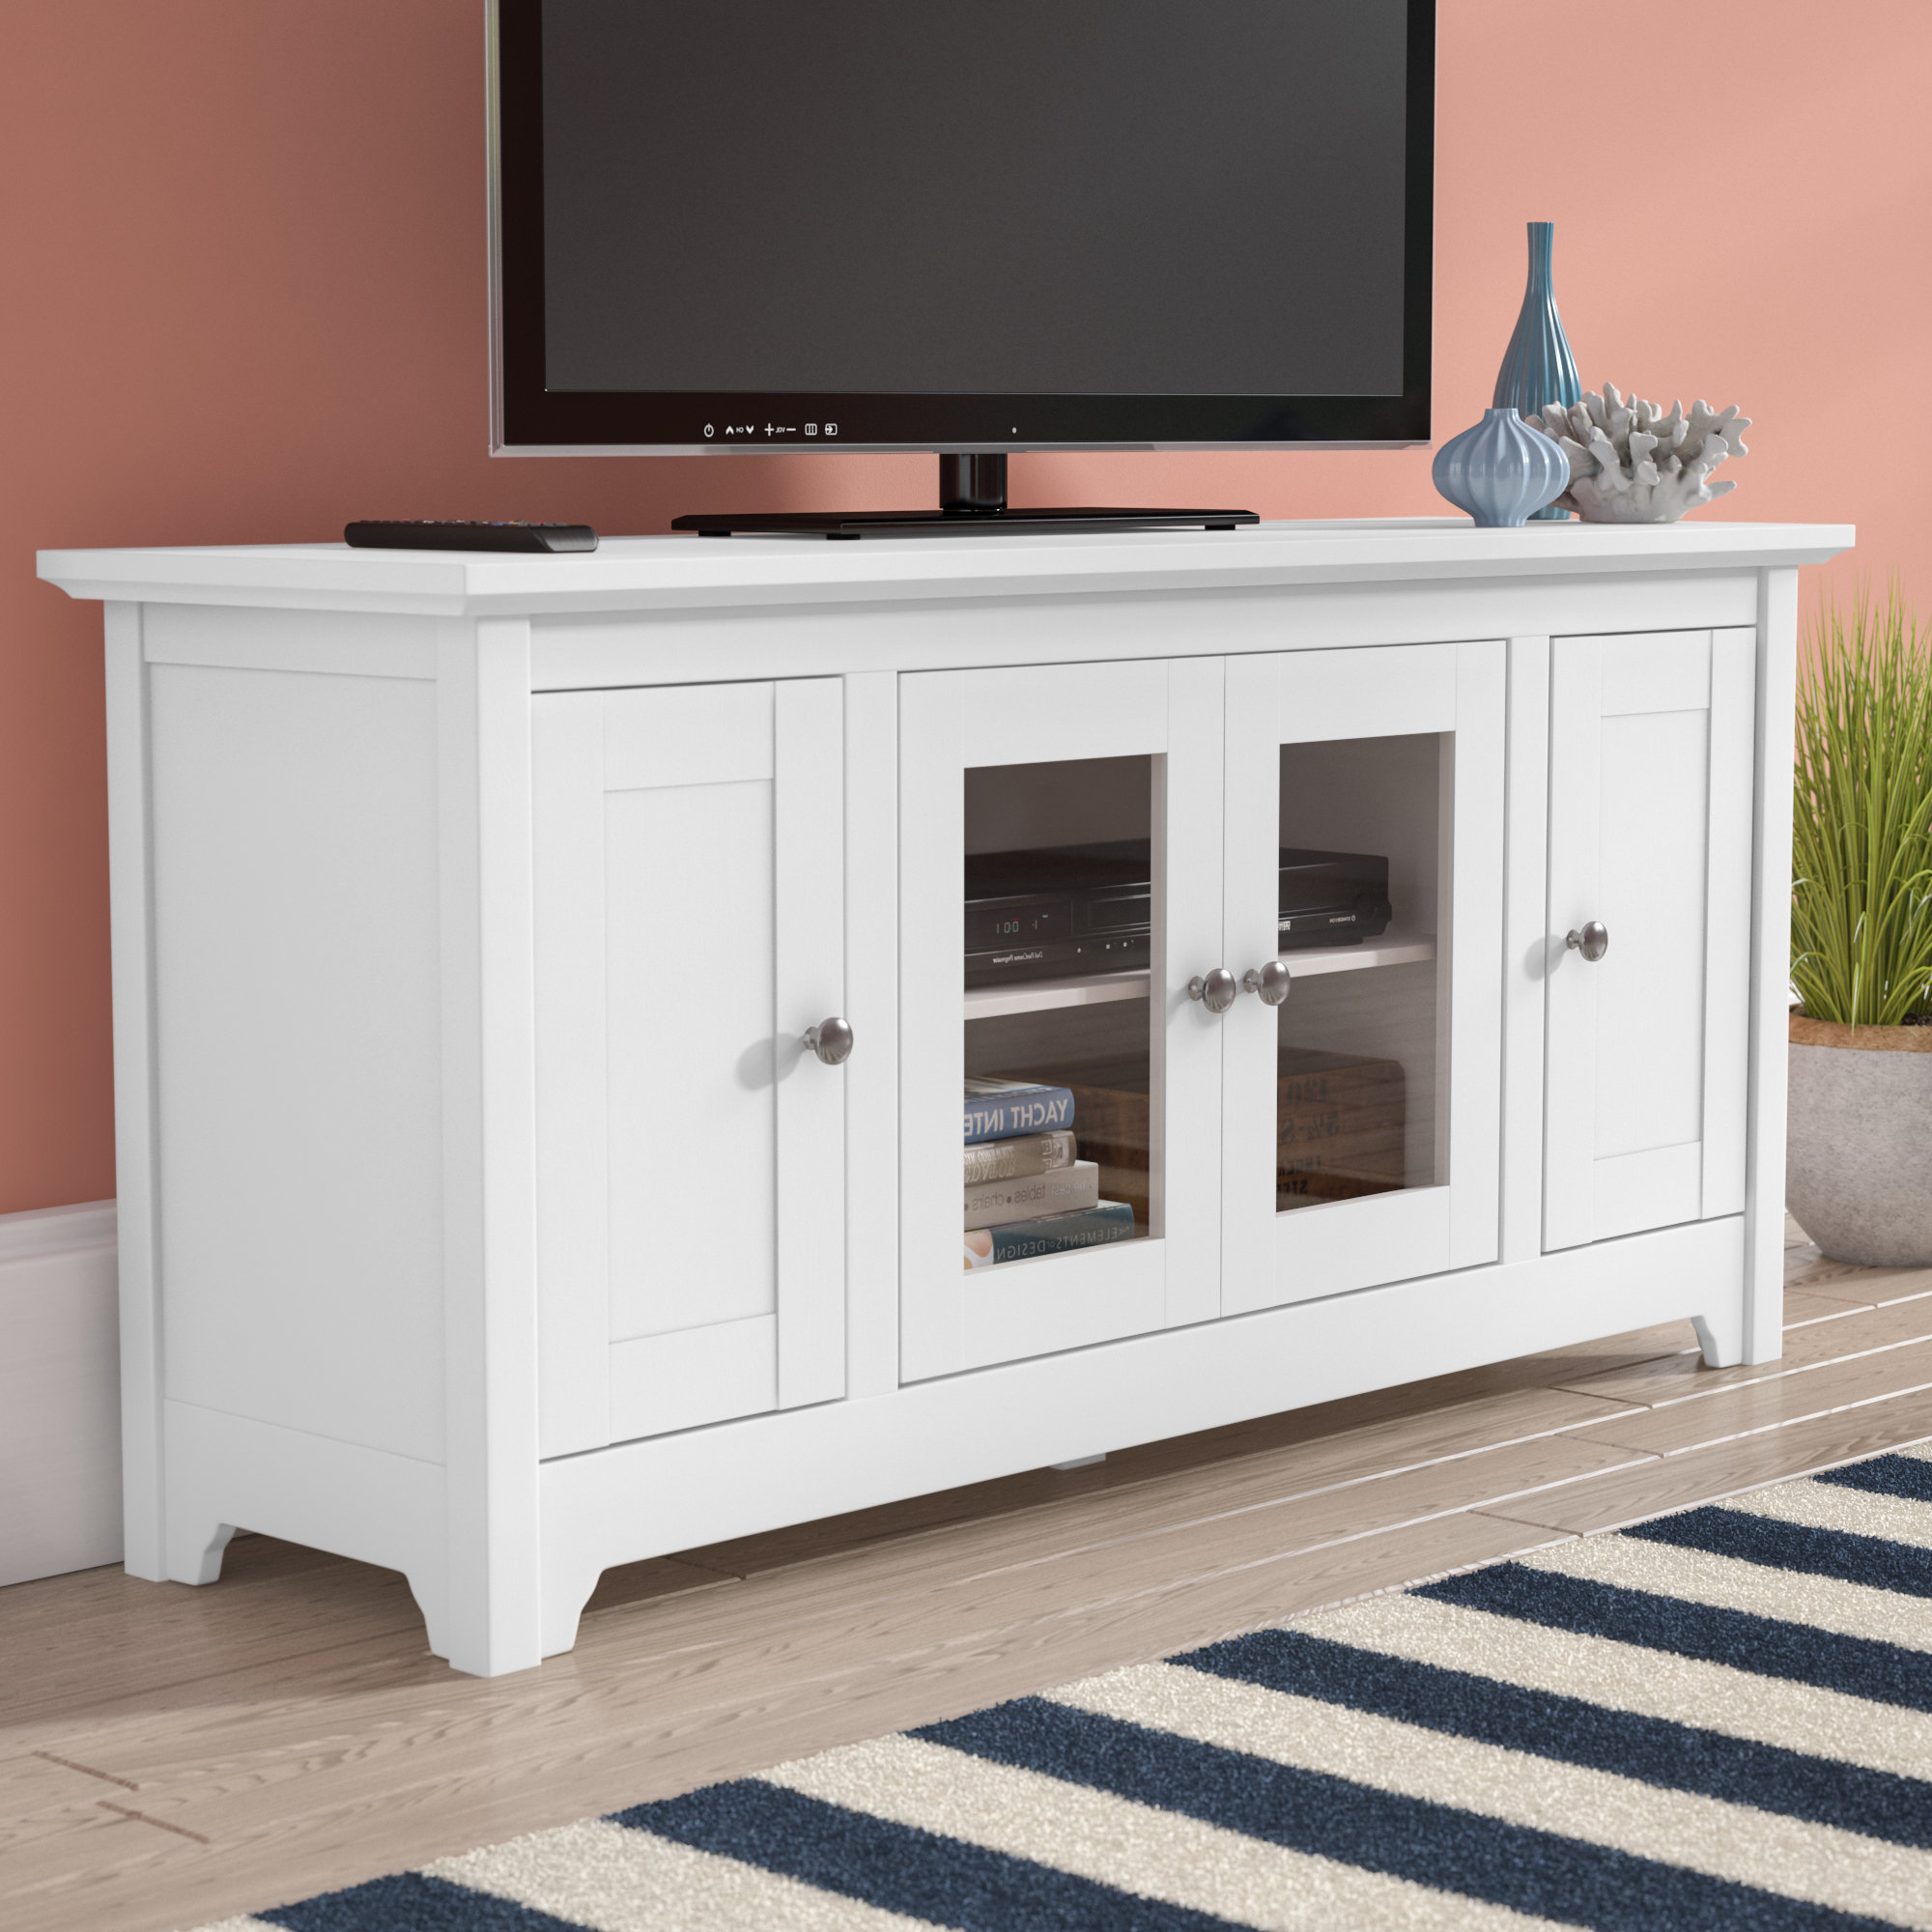 72 Inch Tv Stand | Wayfair Throughout Kenzie 72 Inch Open Display Tv Stands (View 10 of 20)